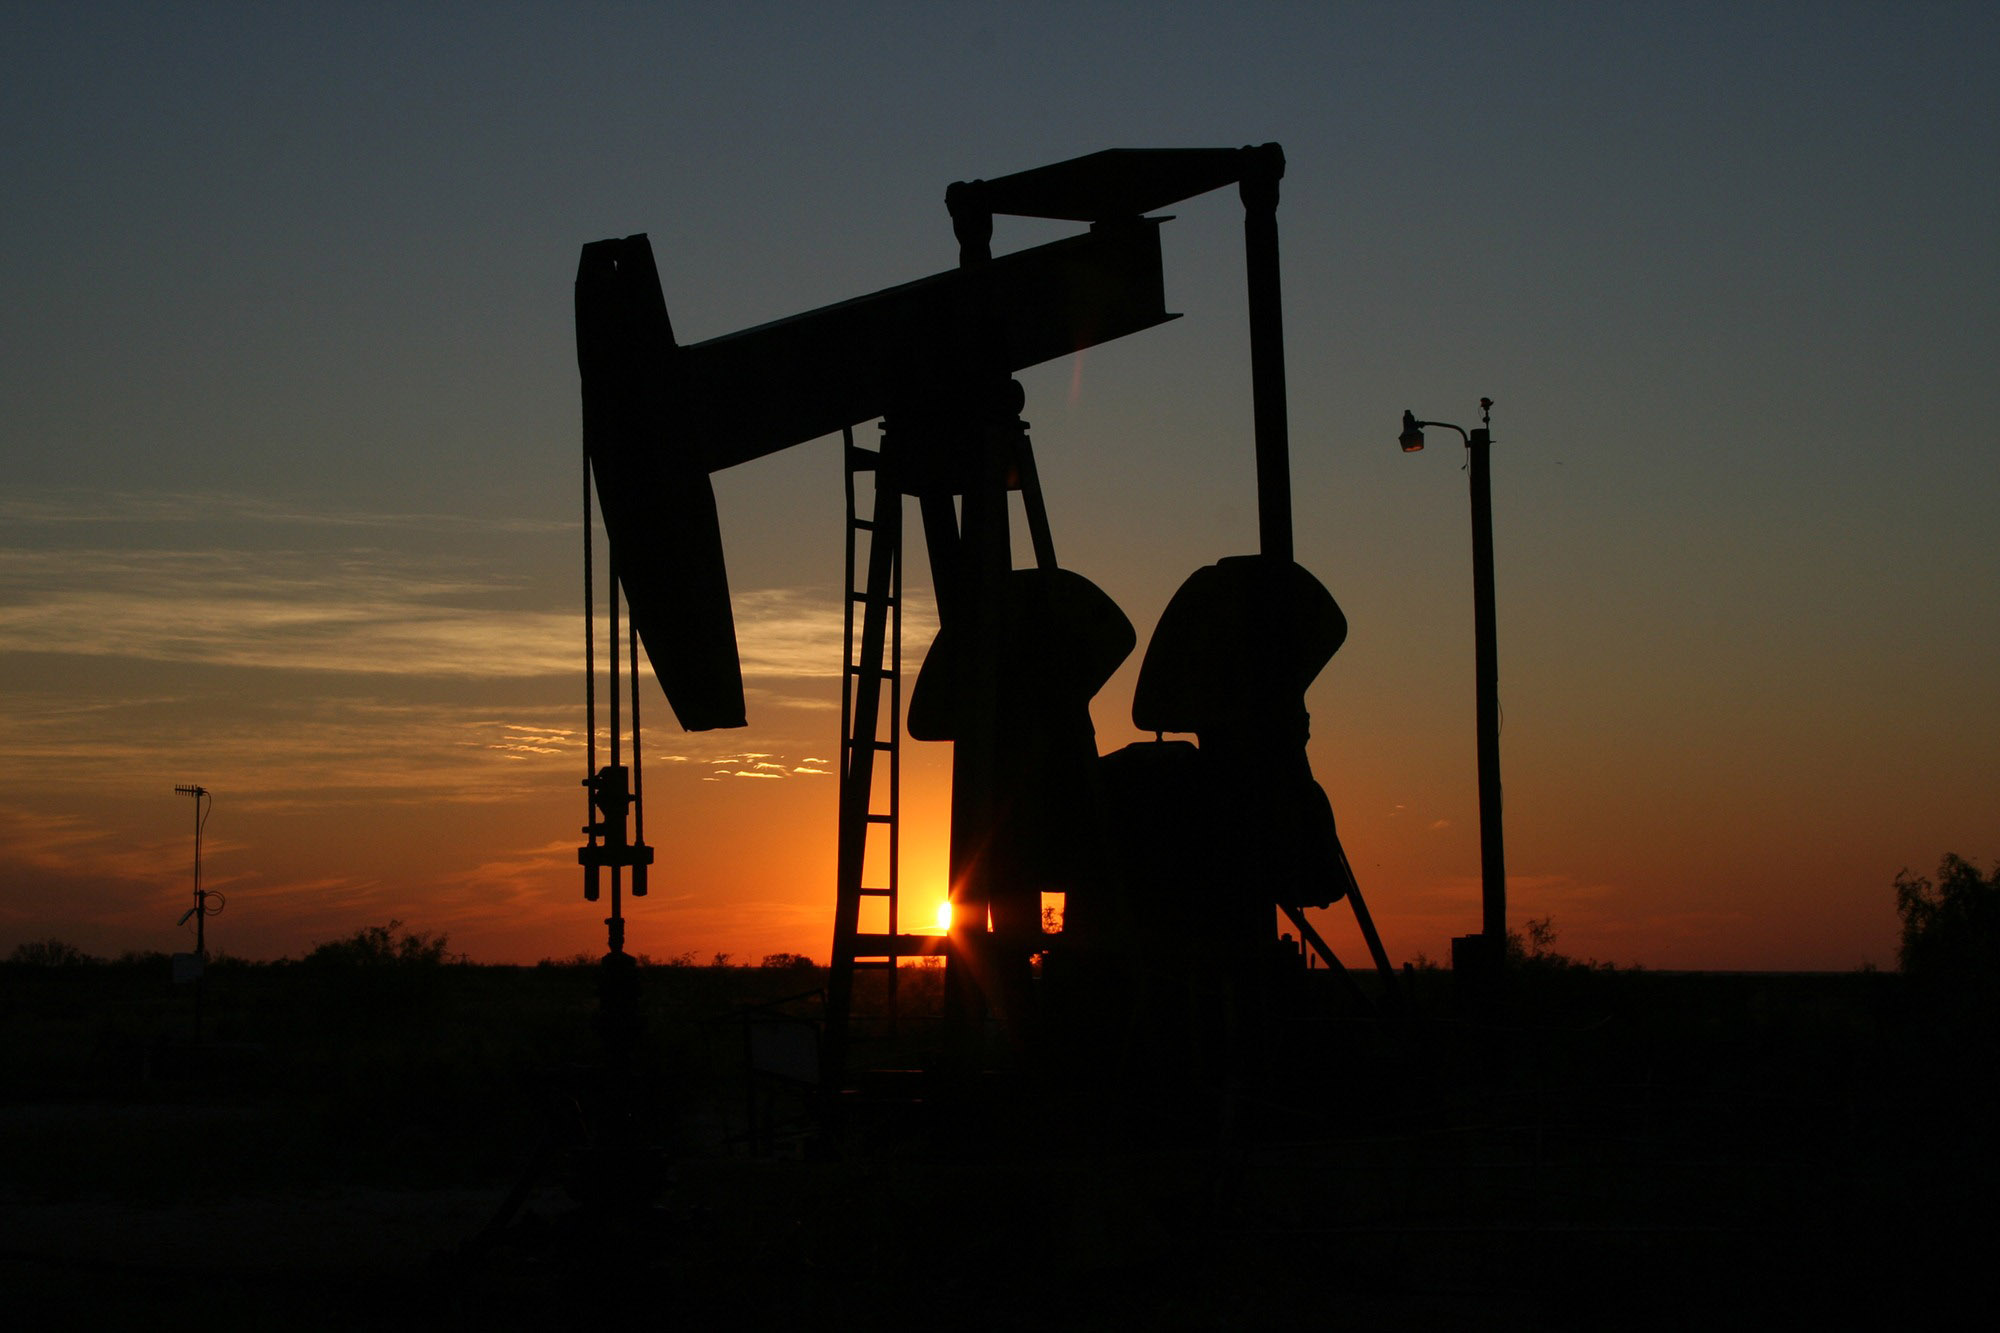 //xspecpower.com/wp-content/uploads/2018/10/oil-derrick-in-the-sunset-in-texas.jpg